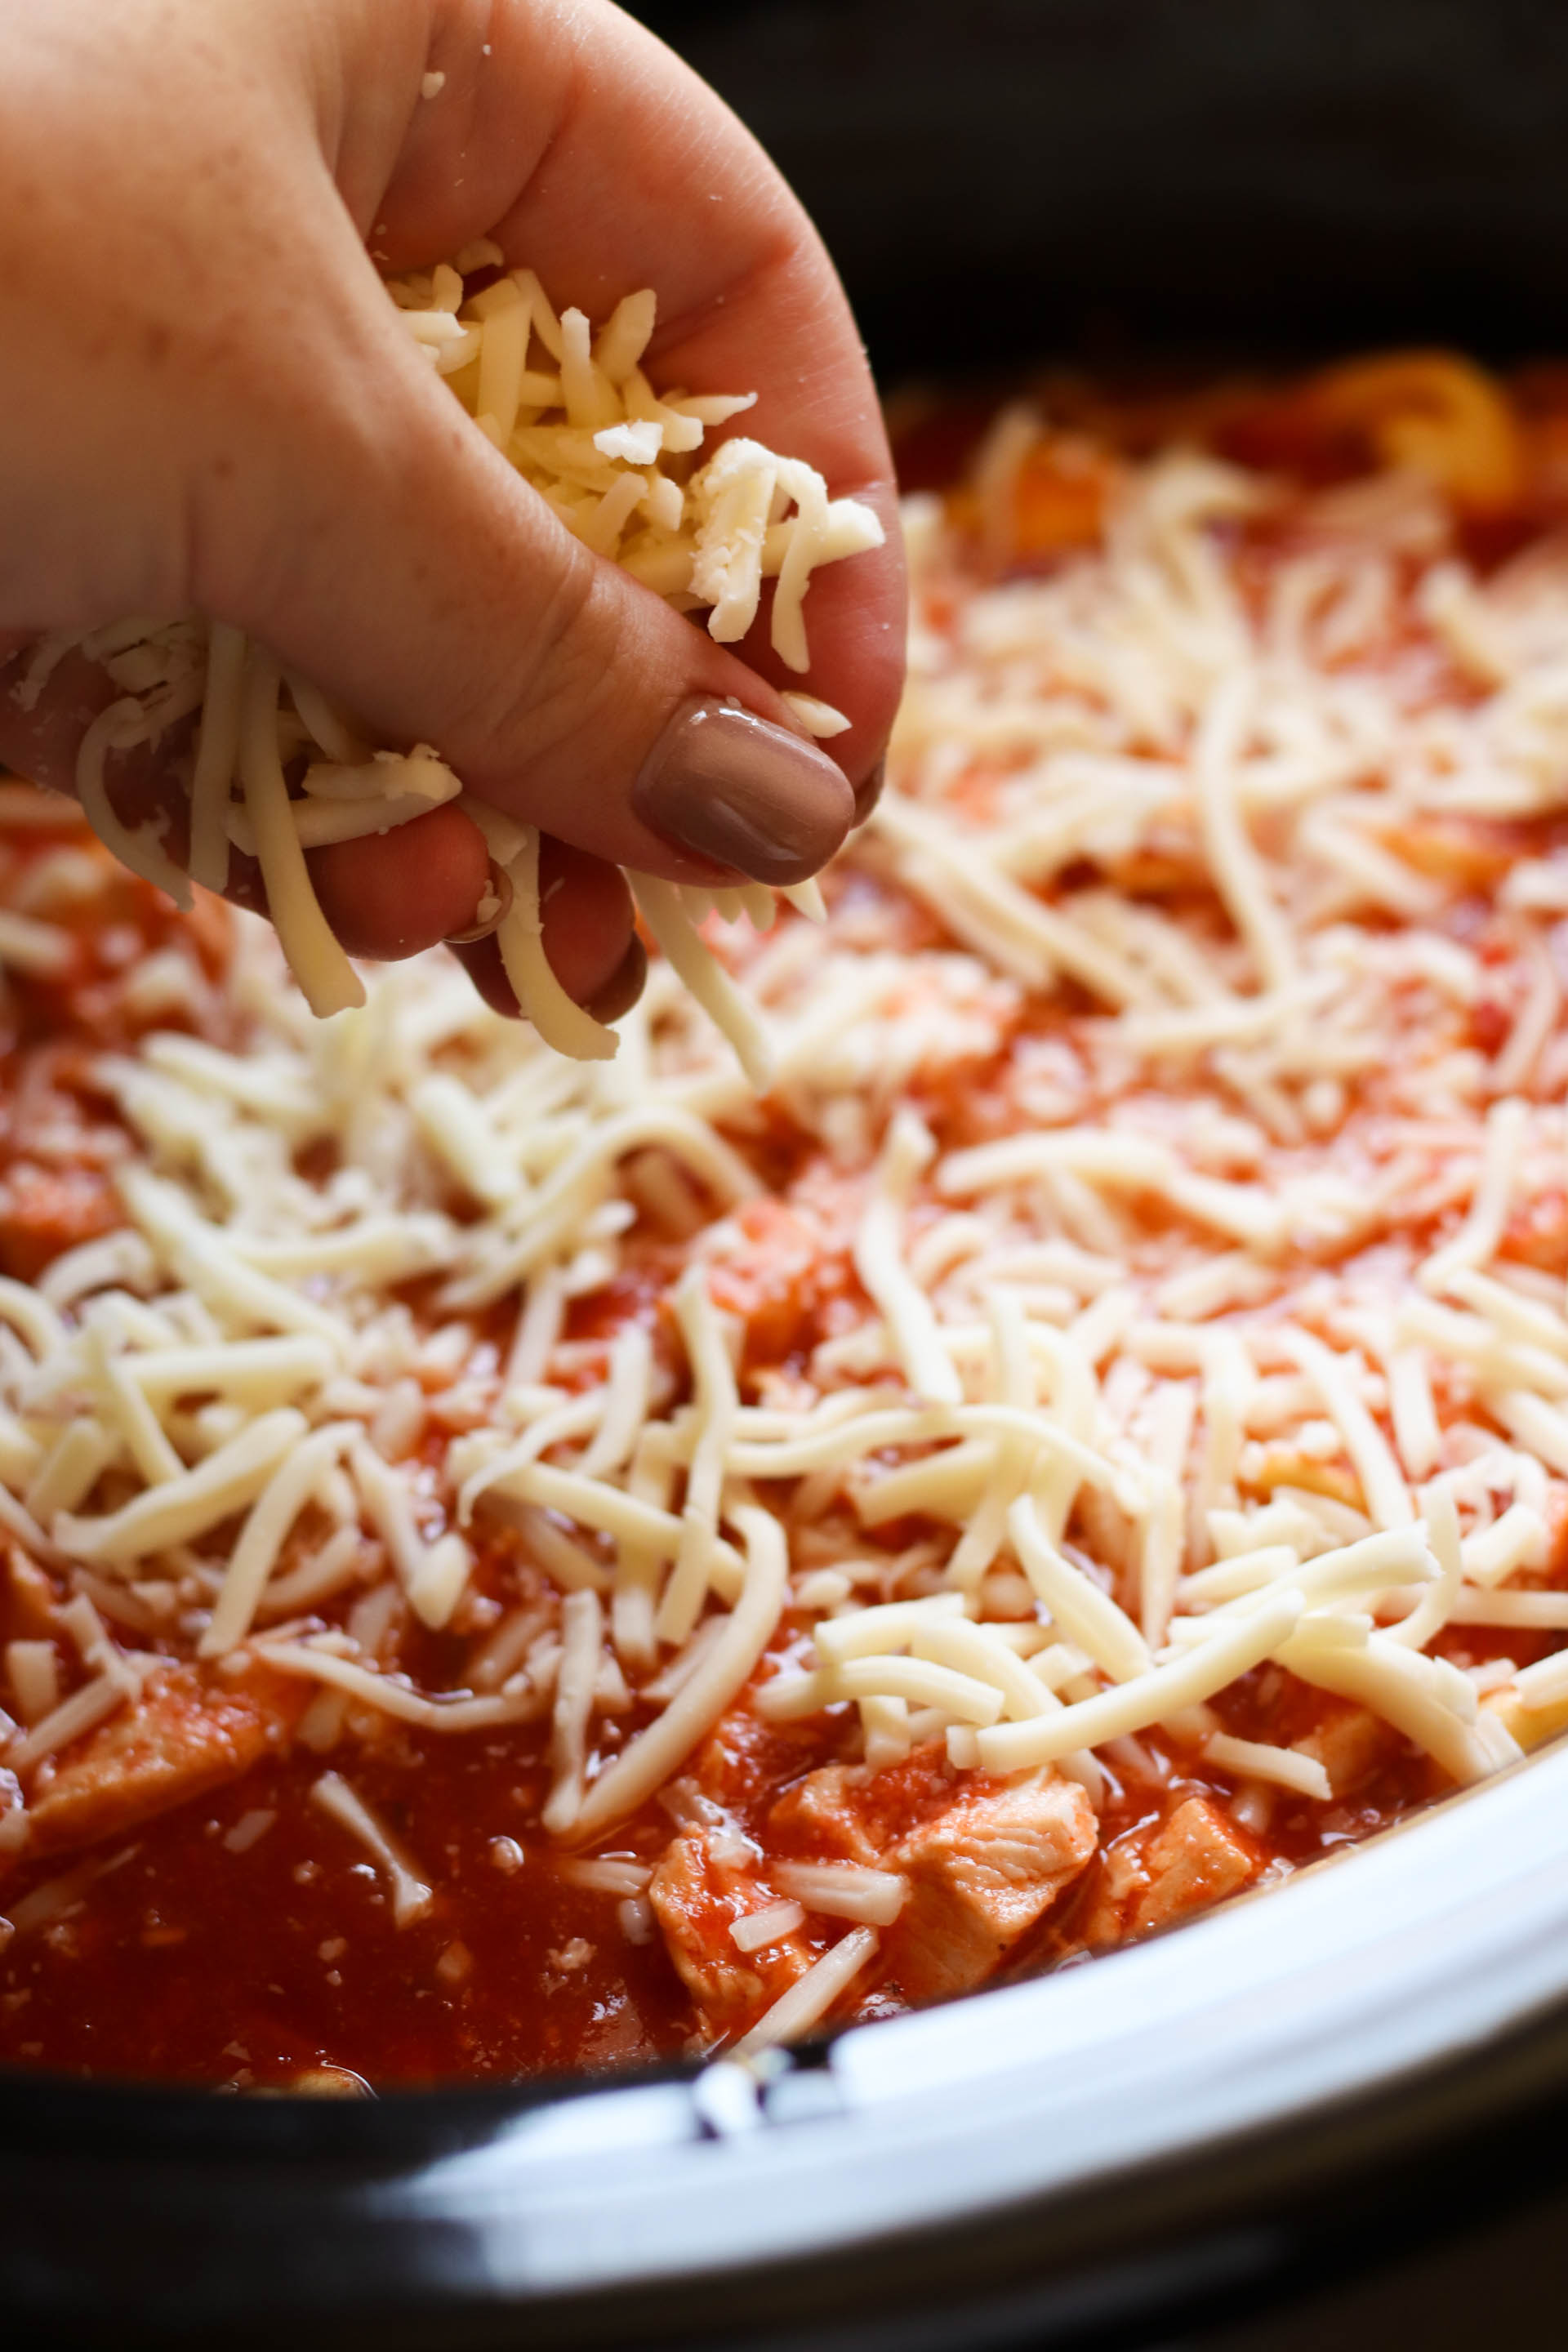 Topping slow cooker mixture with shredded cheese